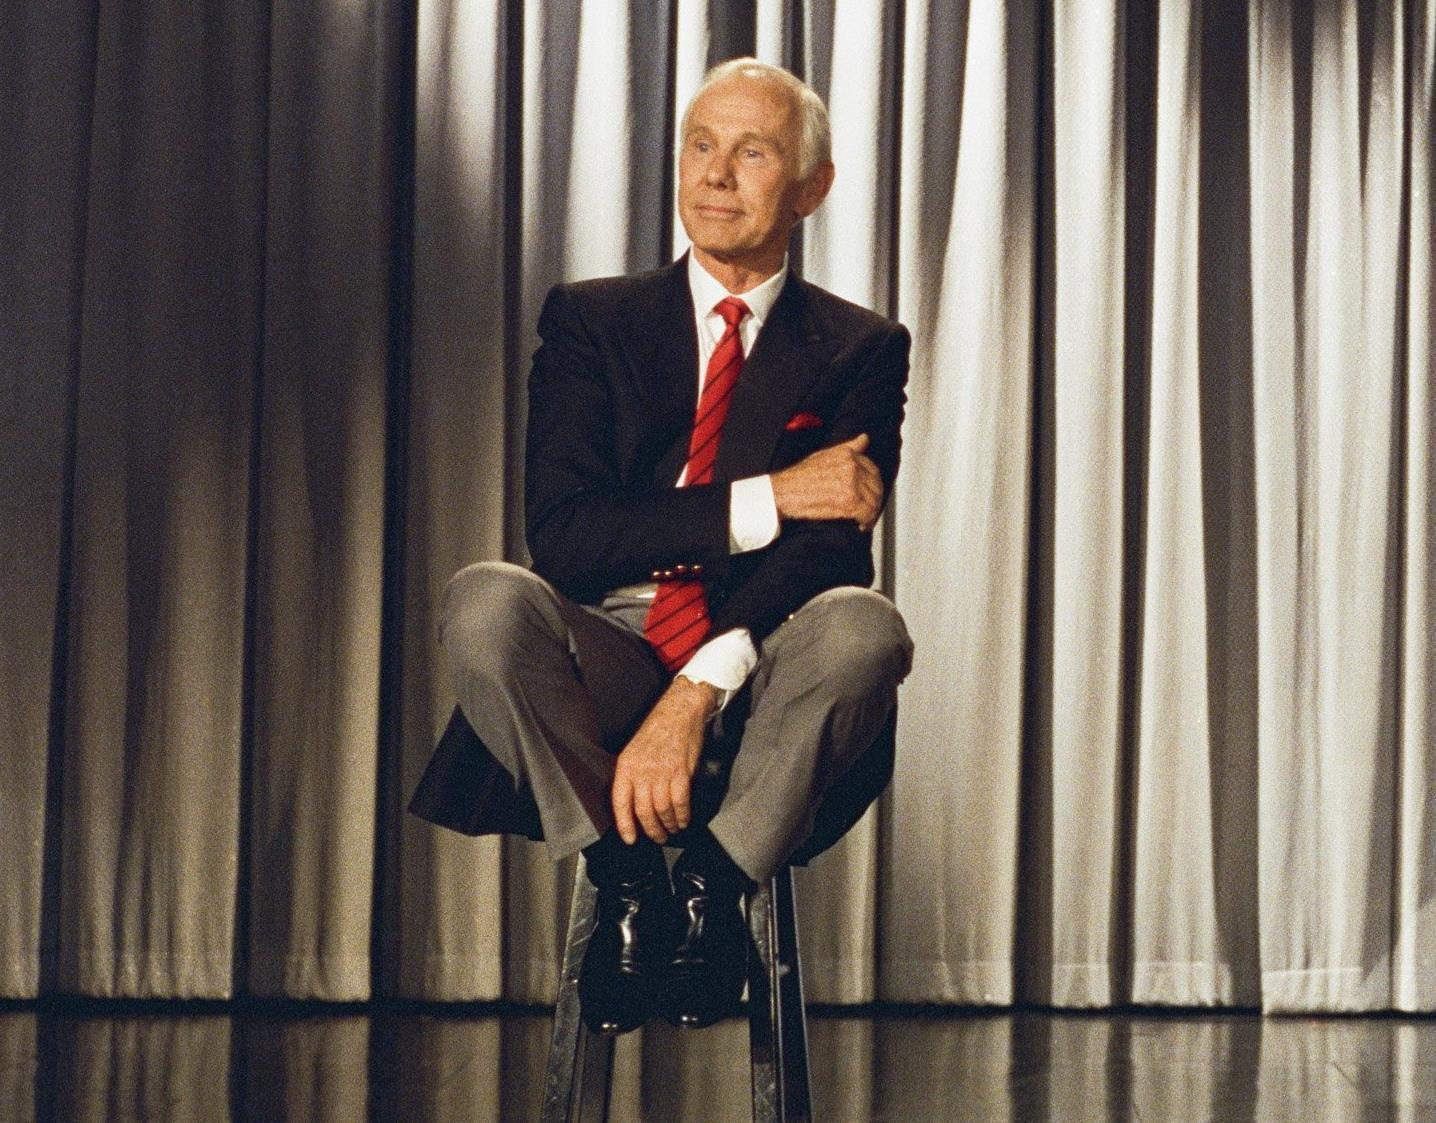 Johnny Carson doing a speech during the last episode of The Tonight Show, 22 May, 1992